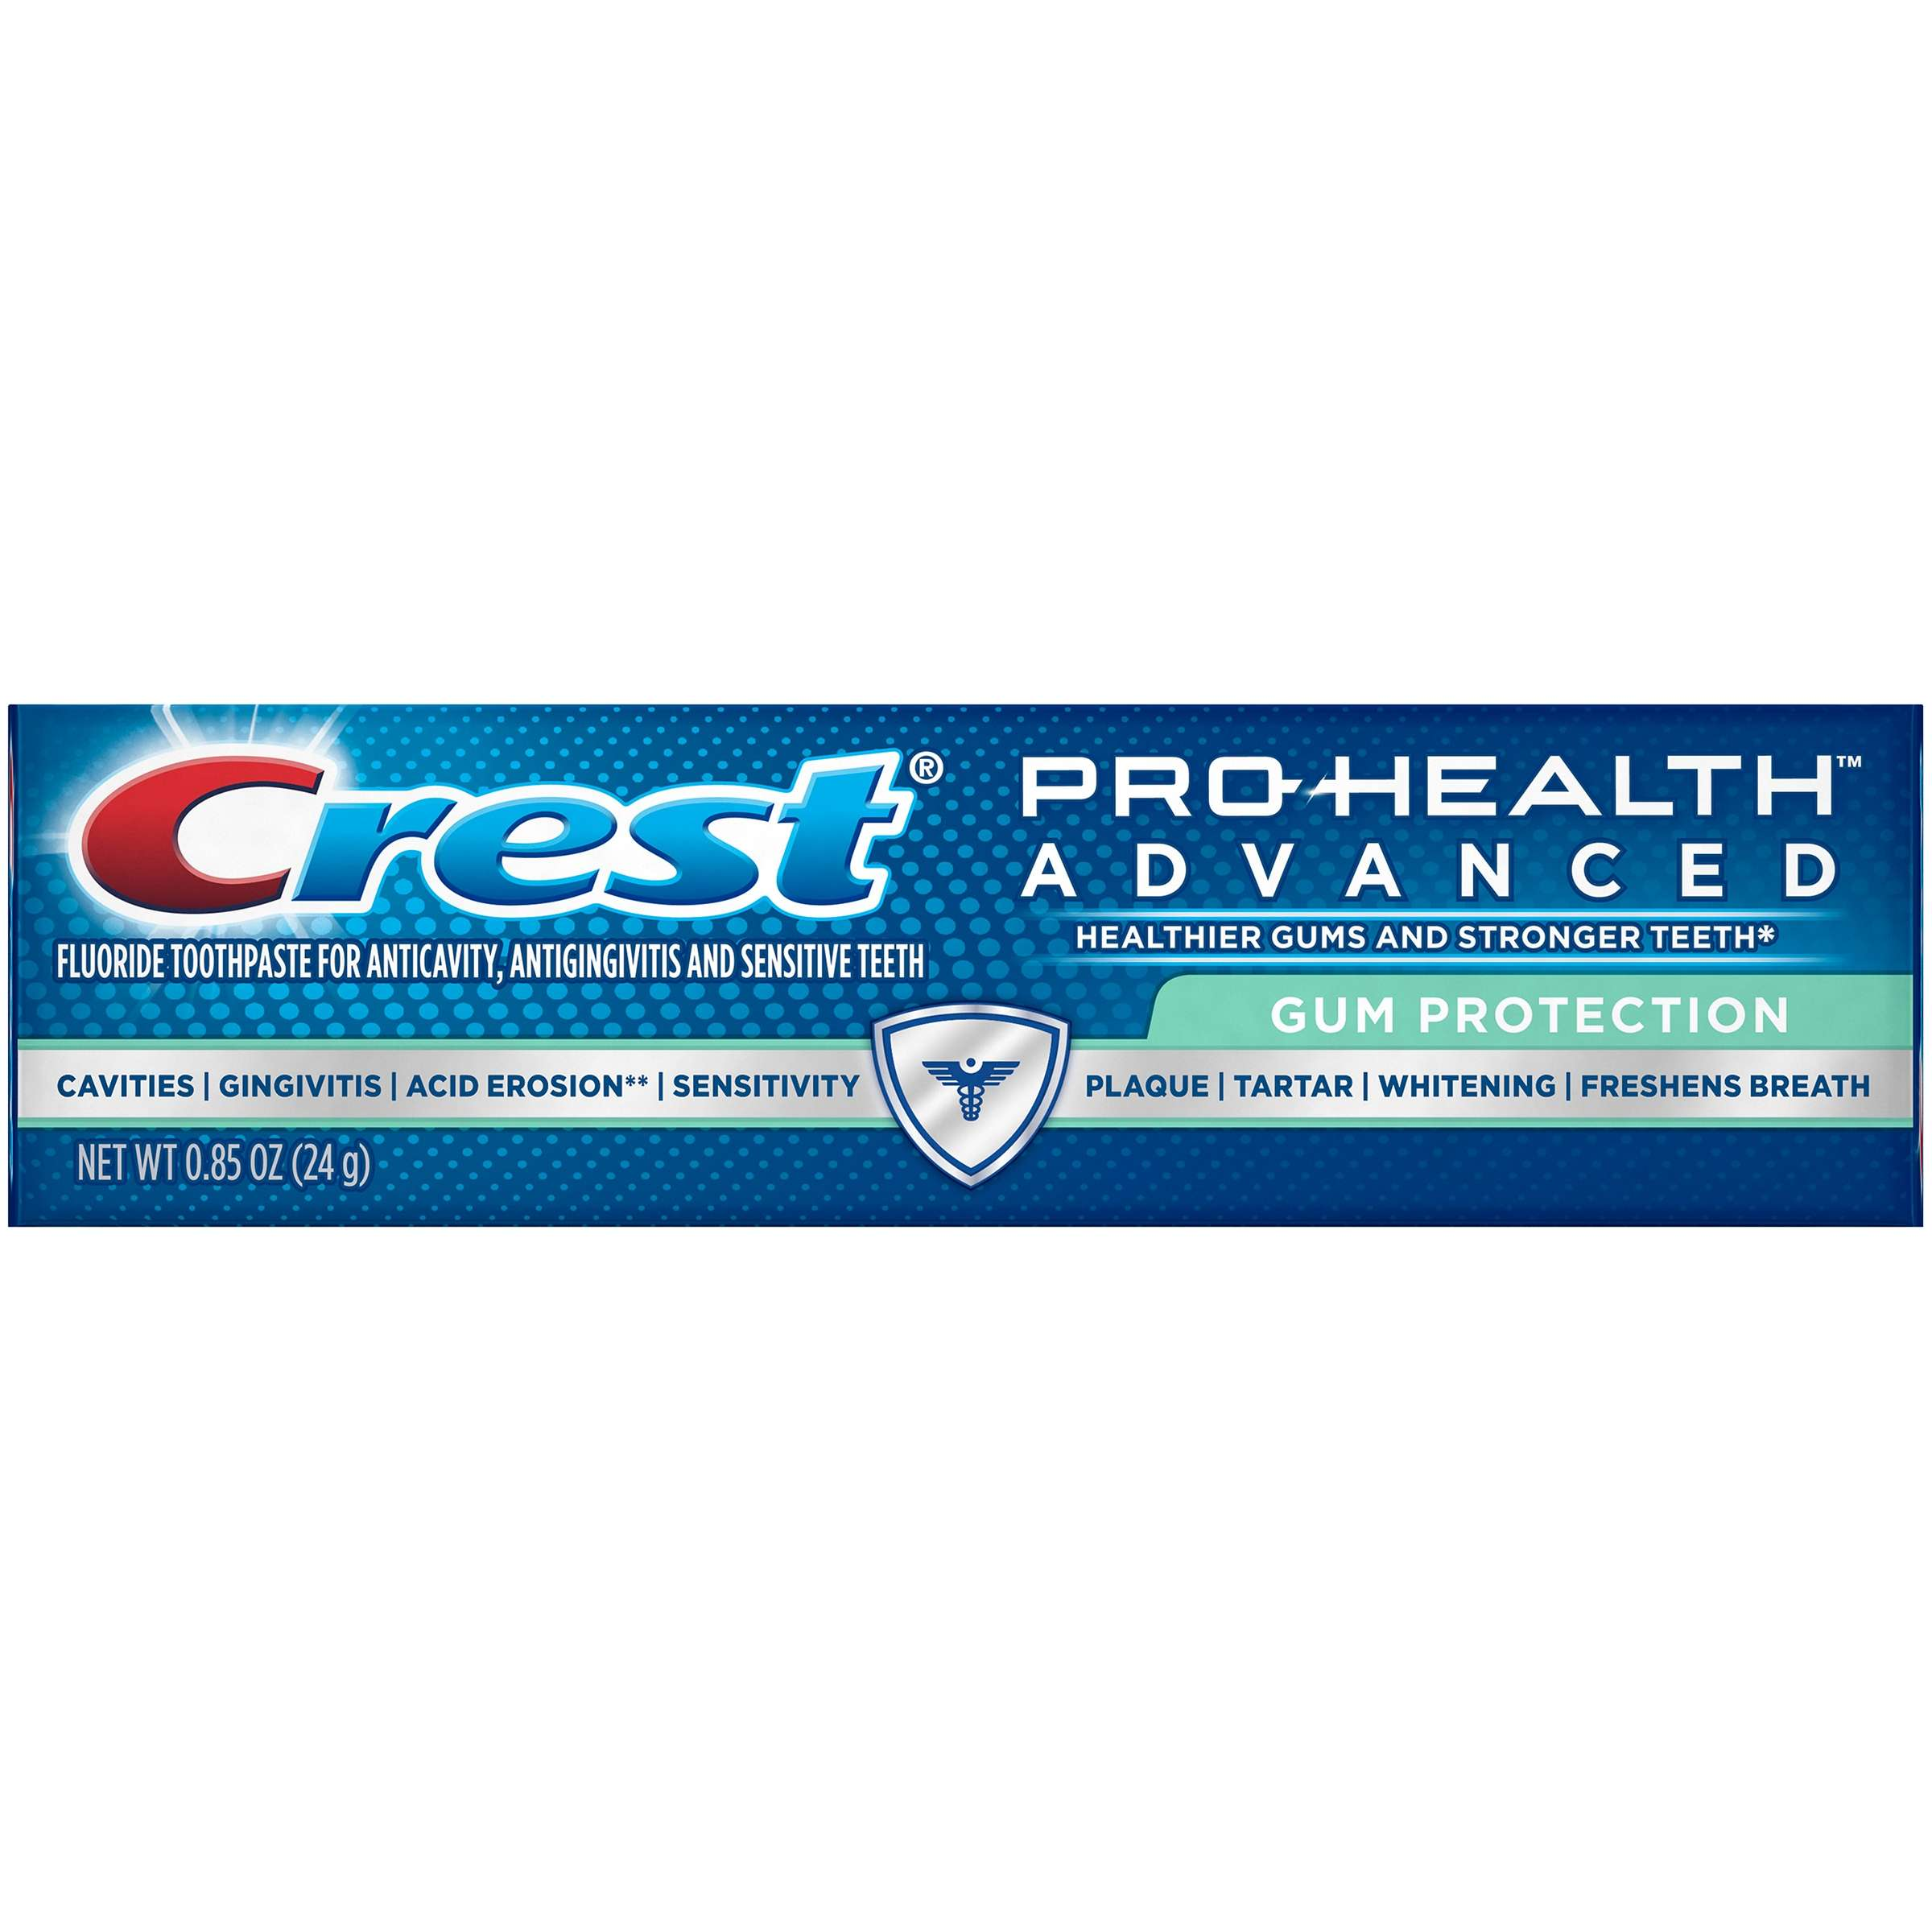 Crest Pro-Health Advanced Gum Protection Toothpaste, .85 oz